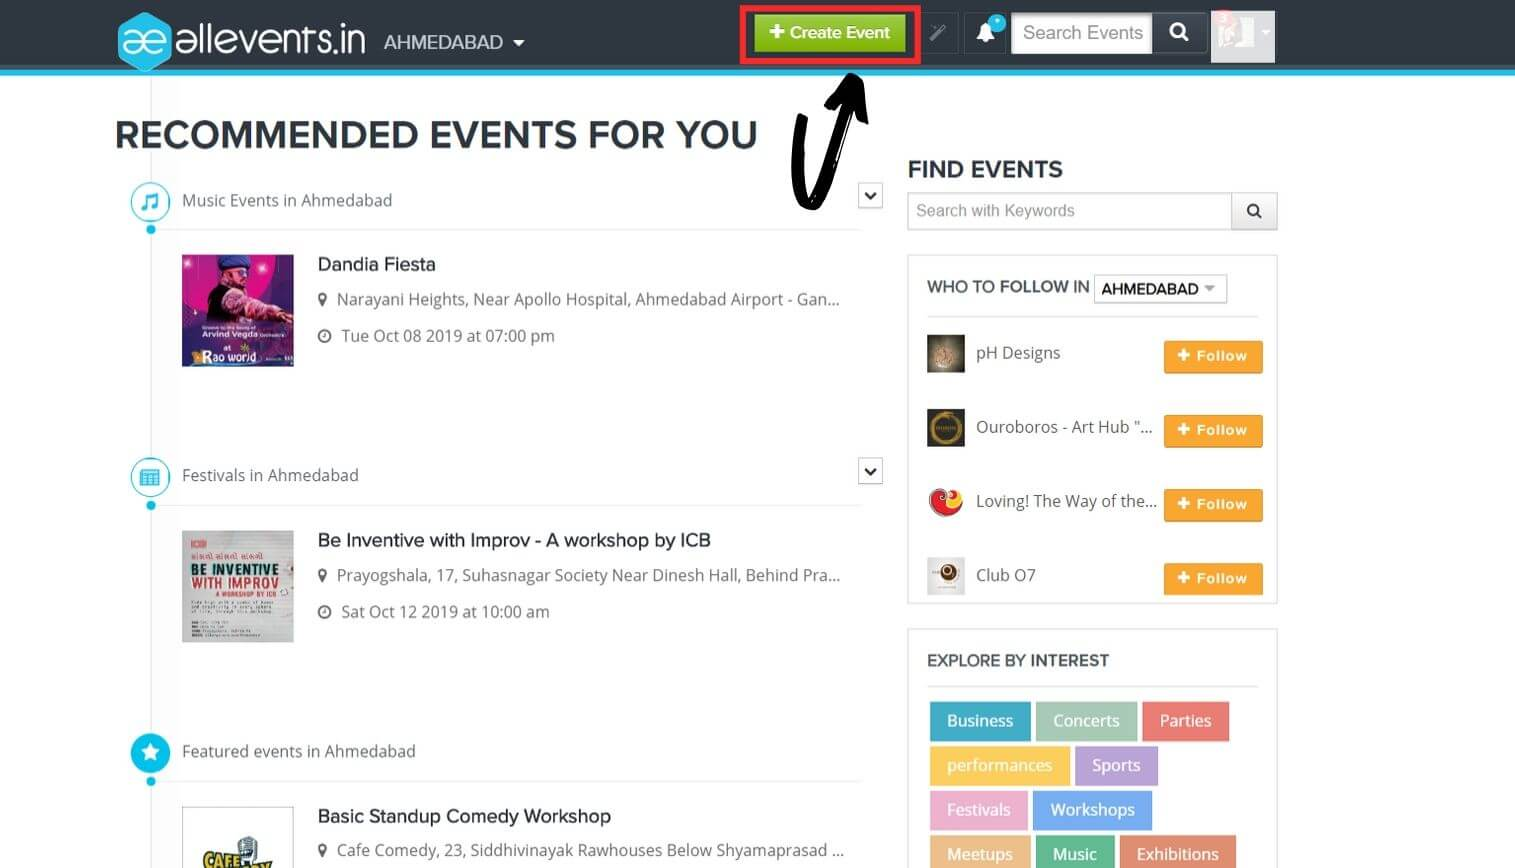 create and publish events on allevents